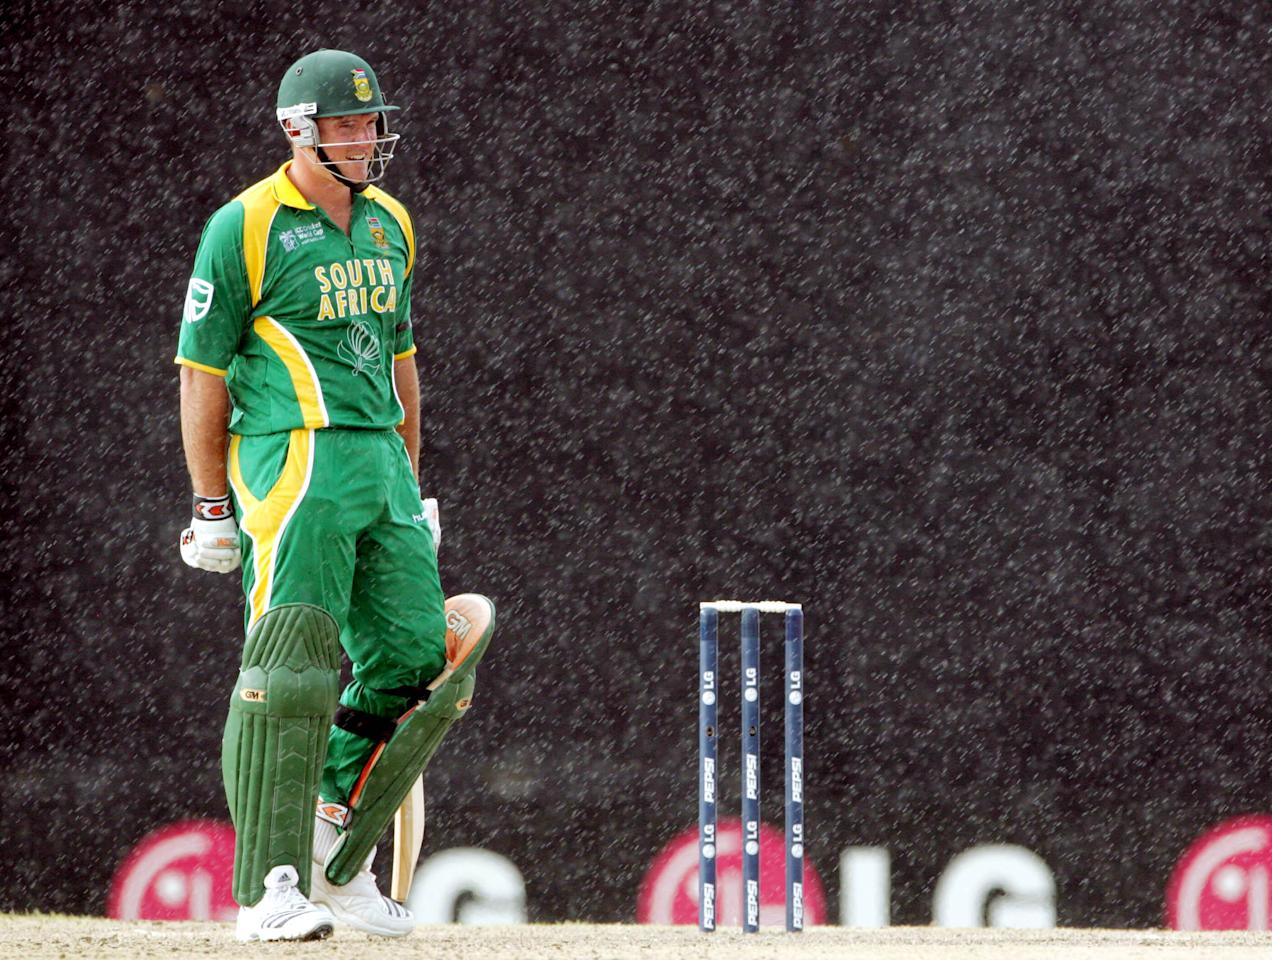 ST KITTS,  WEST INDIES - MARCH 20:  Graeme Smith in the rain after 19 overs during the Cricket World Cup Group A match between South Africa and Scotland at Warner Park on March 20, 2007, in Basseterre, St Kitts. (Photo by Duif du Toit/Gallo Images/Getty Images)